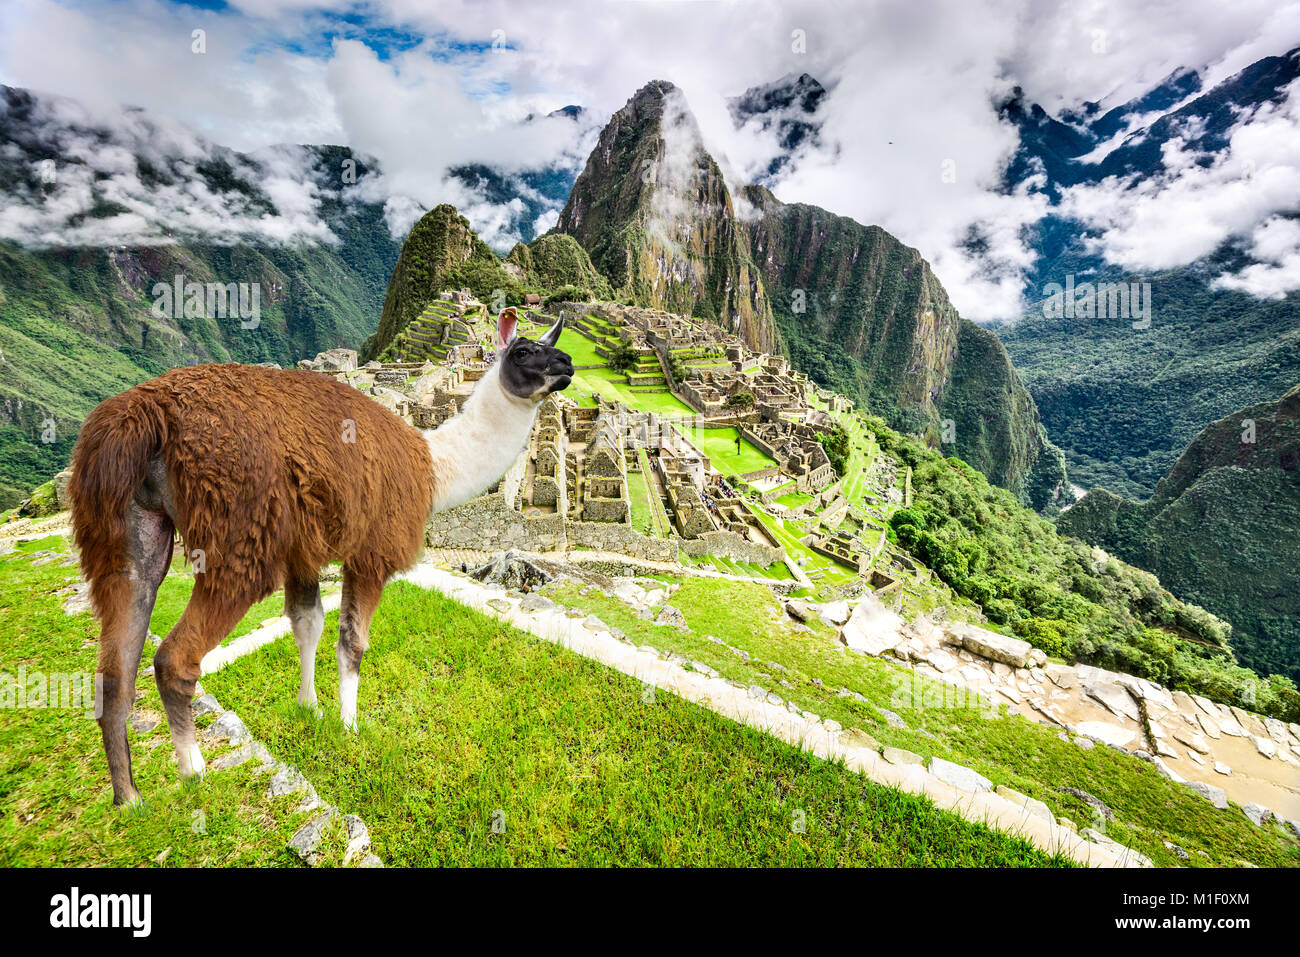 Machu Picchu, Cusco, Peru - Inca Empire city and Huaynapicchu Mountain, Sacred Valley. Amazing place of South America. - Stock Image